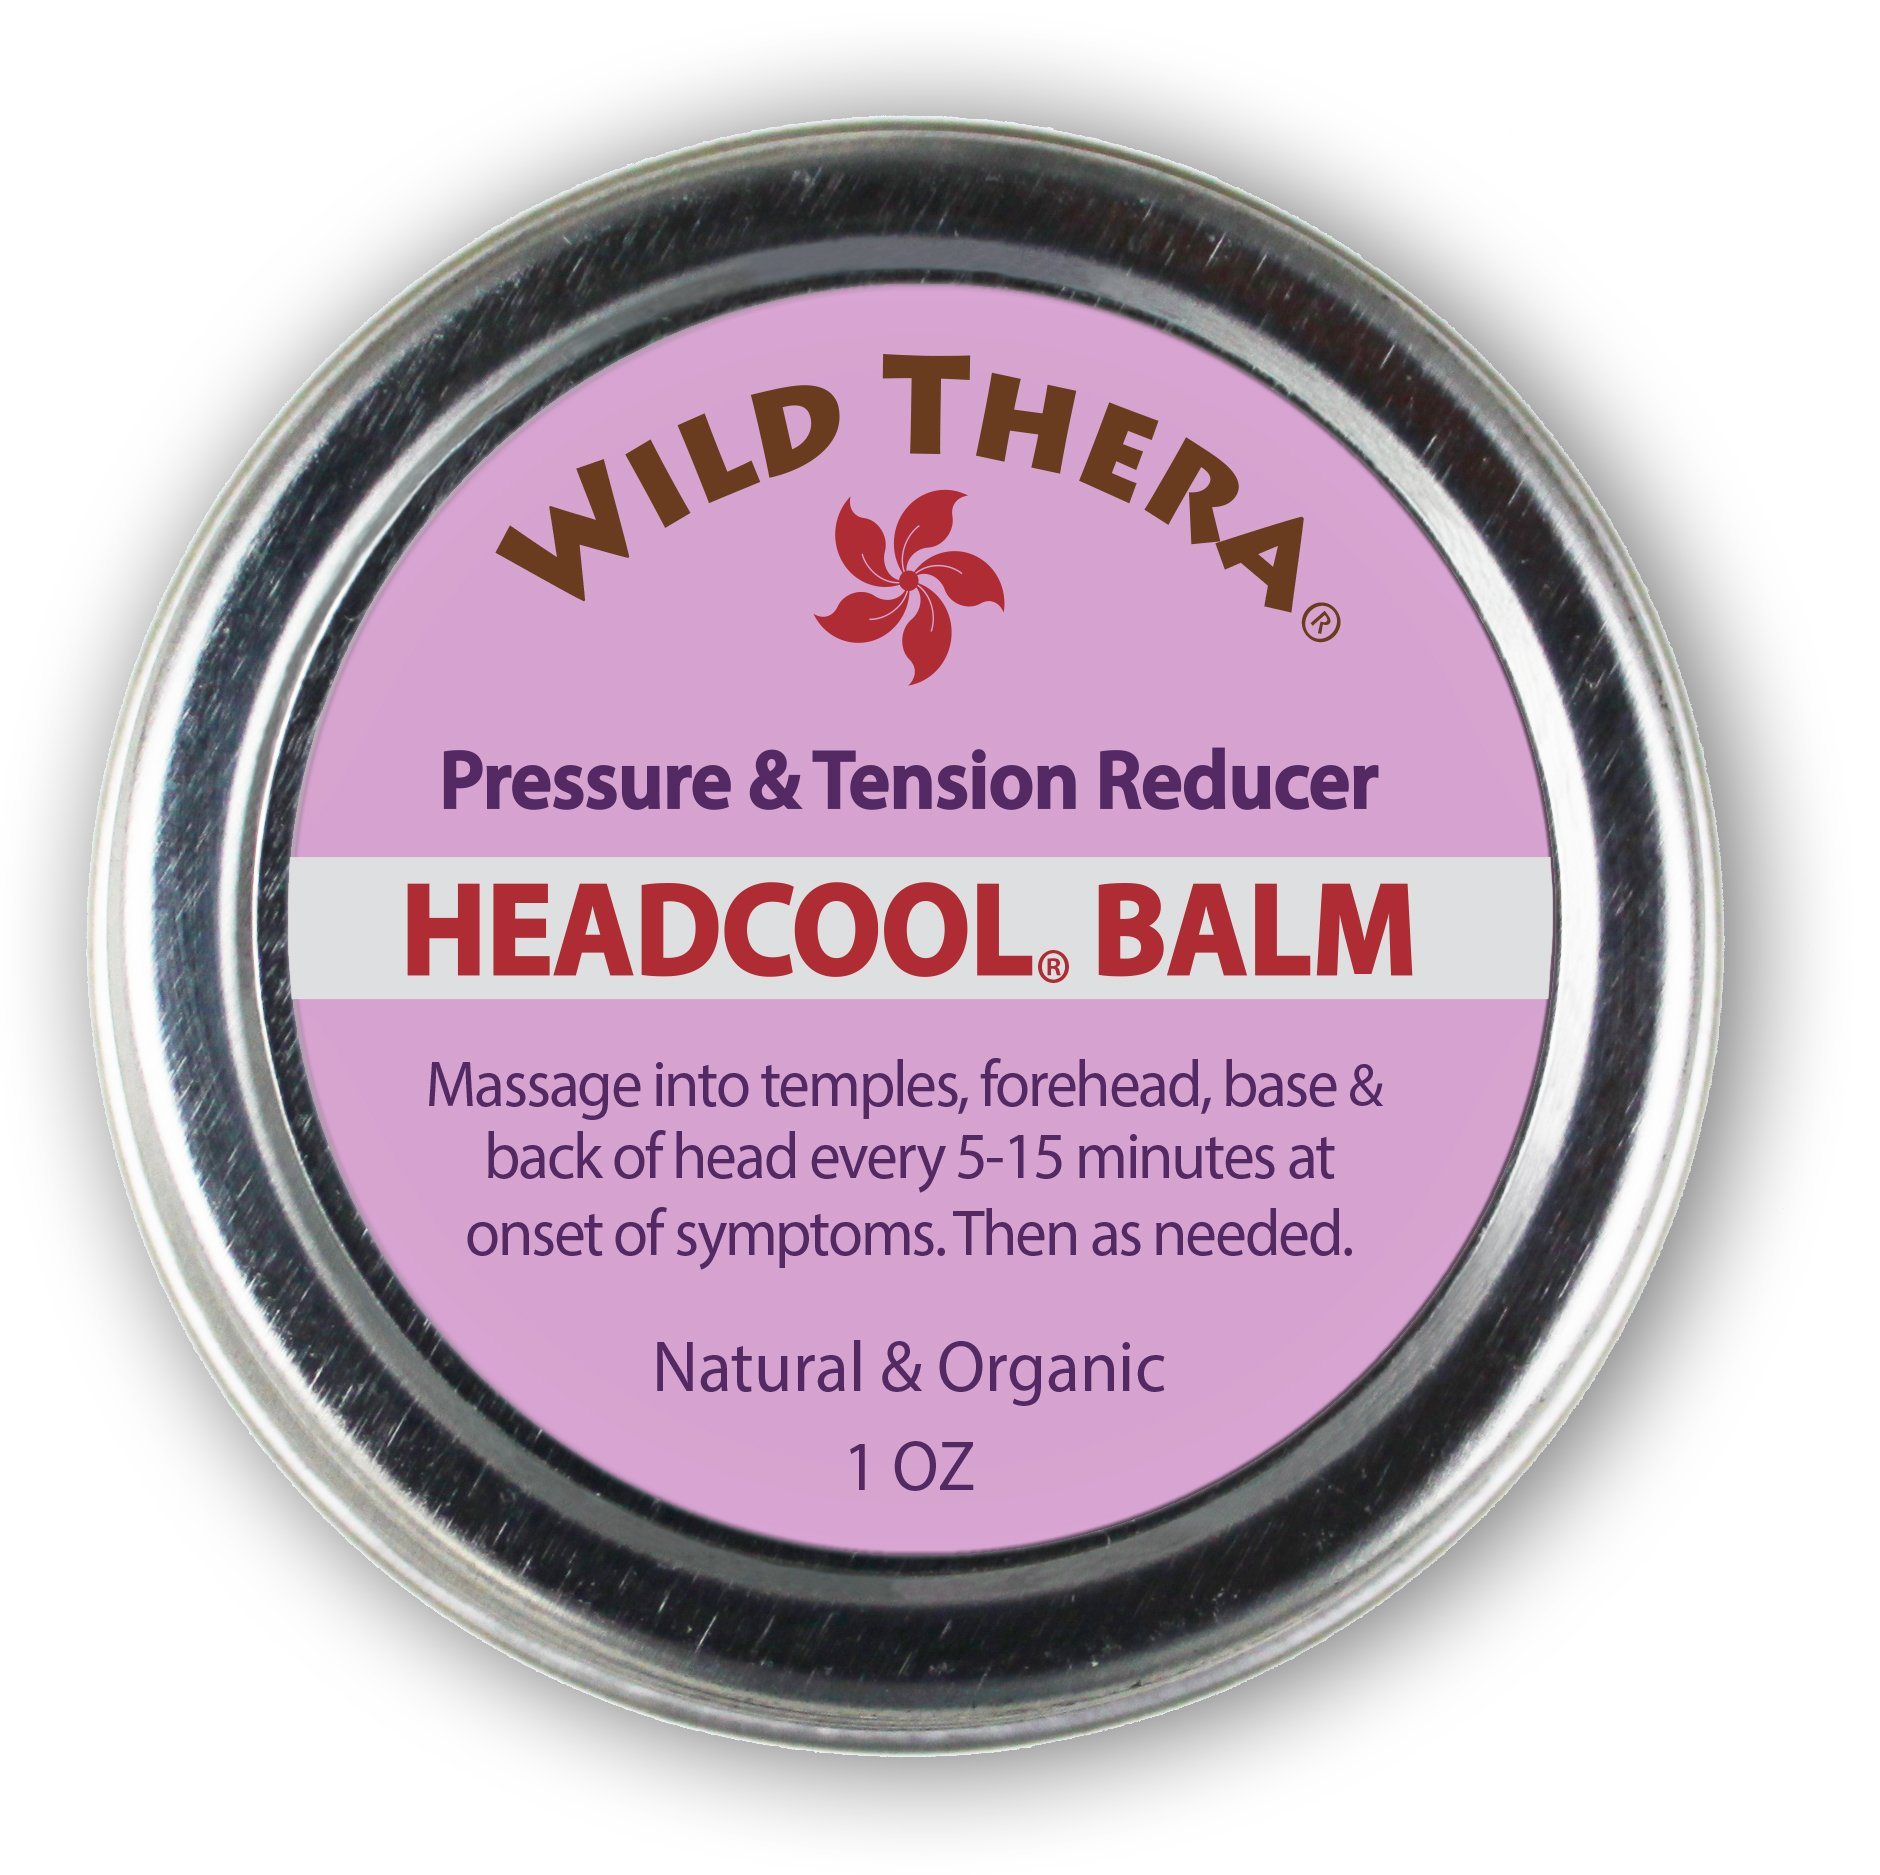 Headache Migraine Relief. Herbal Balm with Essential Oils for Sinus Headache, Nausea Headaches, Stress & Anxiety Relief. Can be used with Headache Hat, Migraine mask, Ice pack and Aromatherapy.